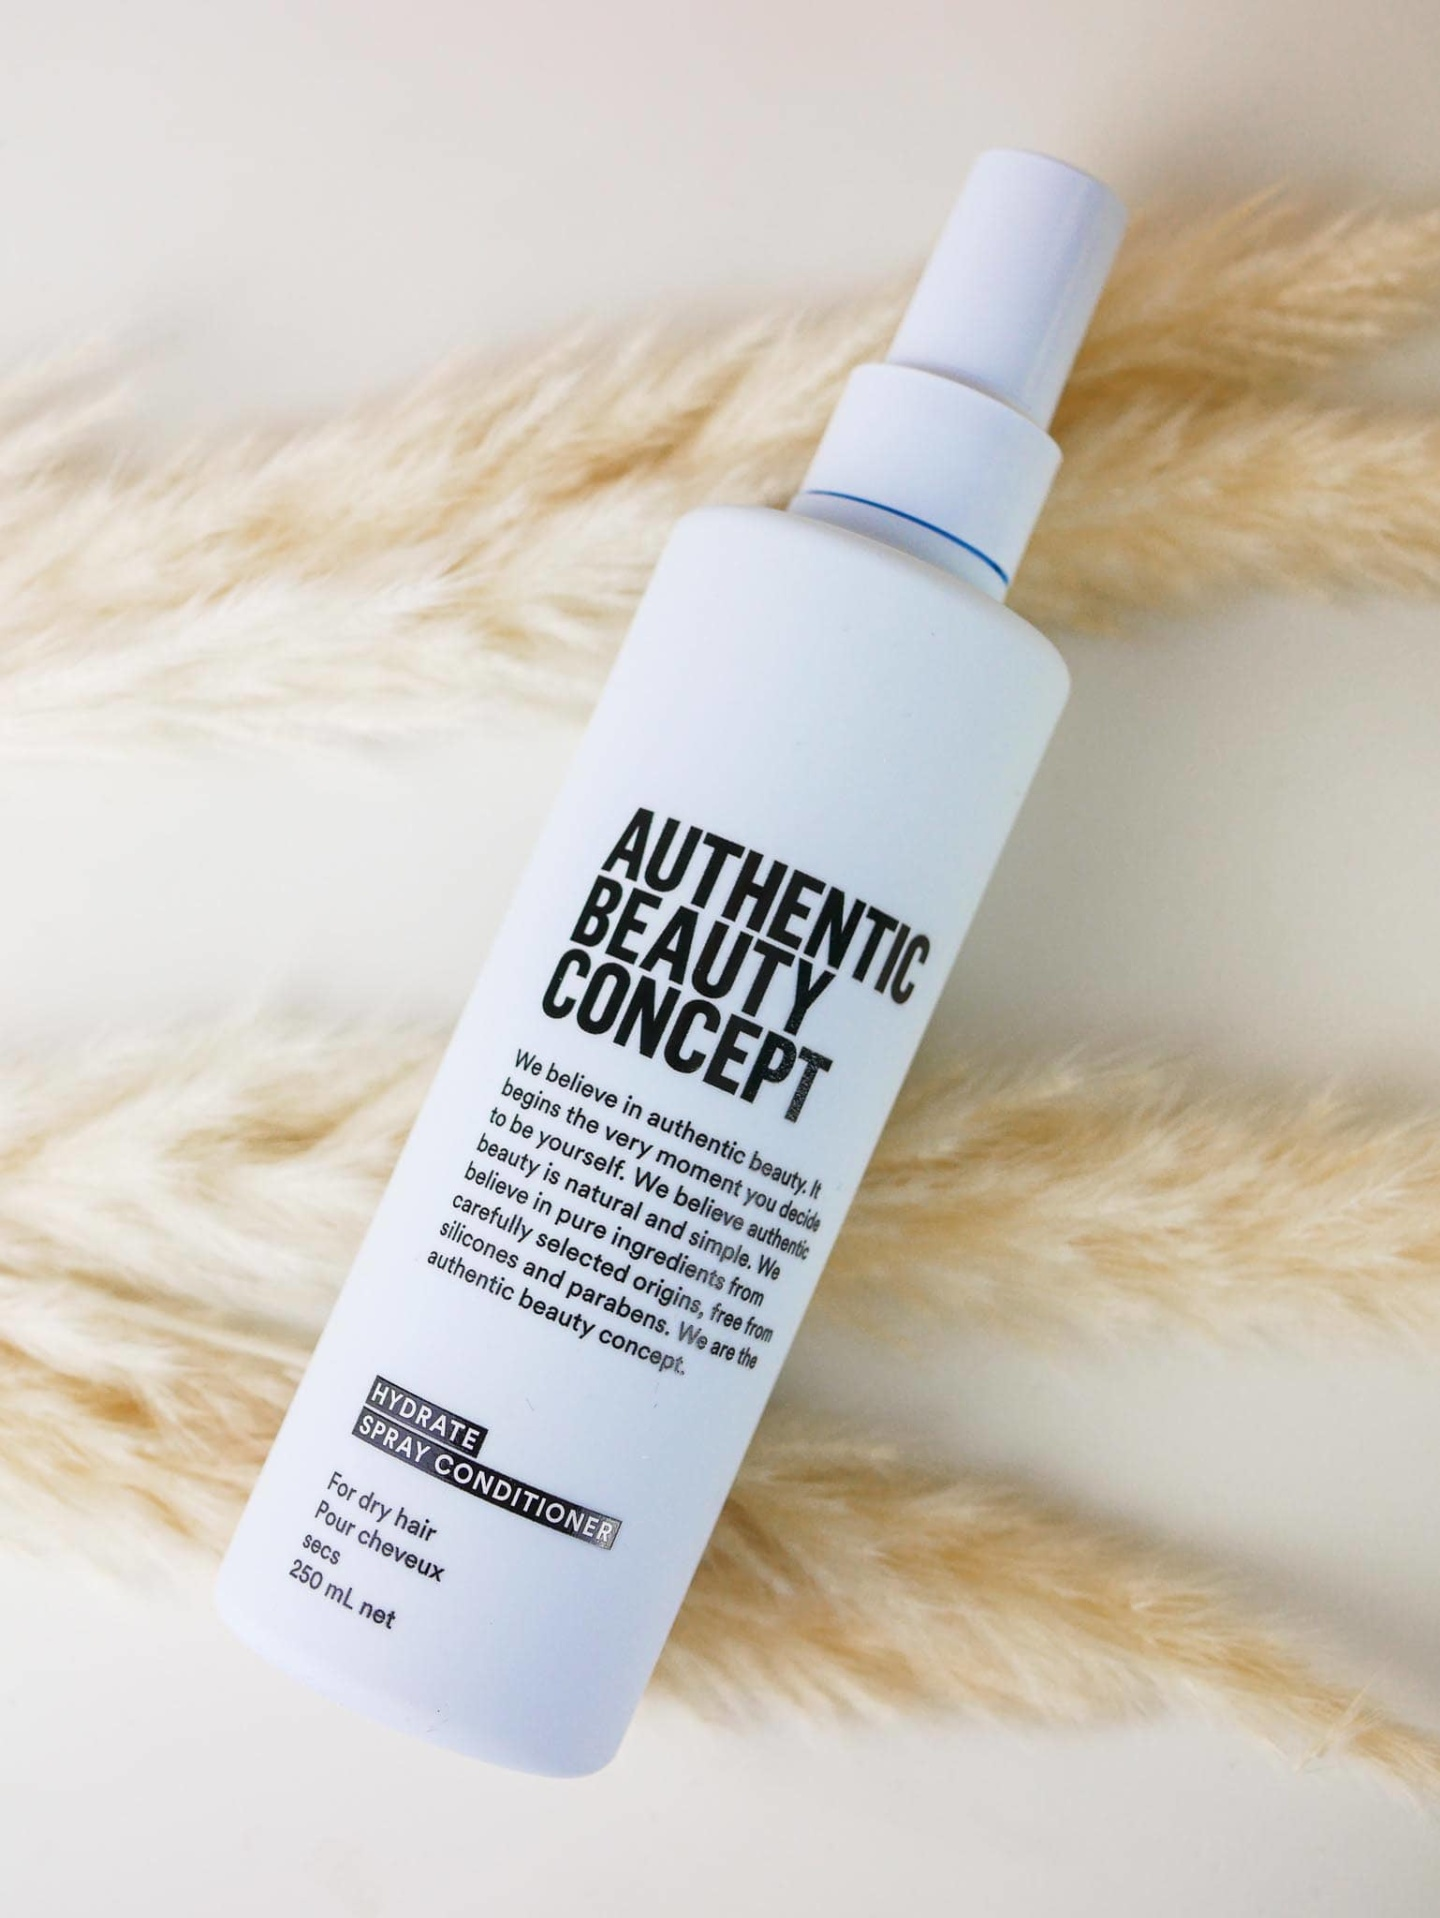 hydrate spray authentic beauty concept